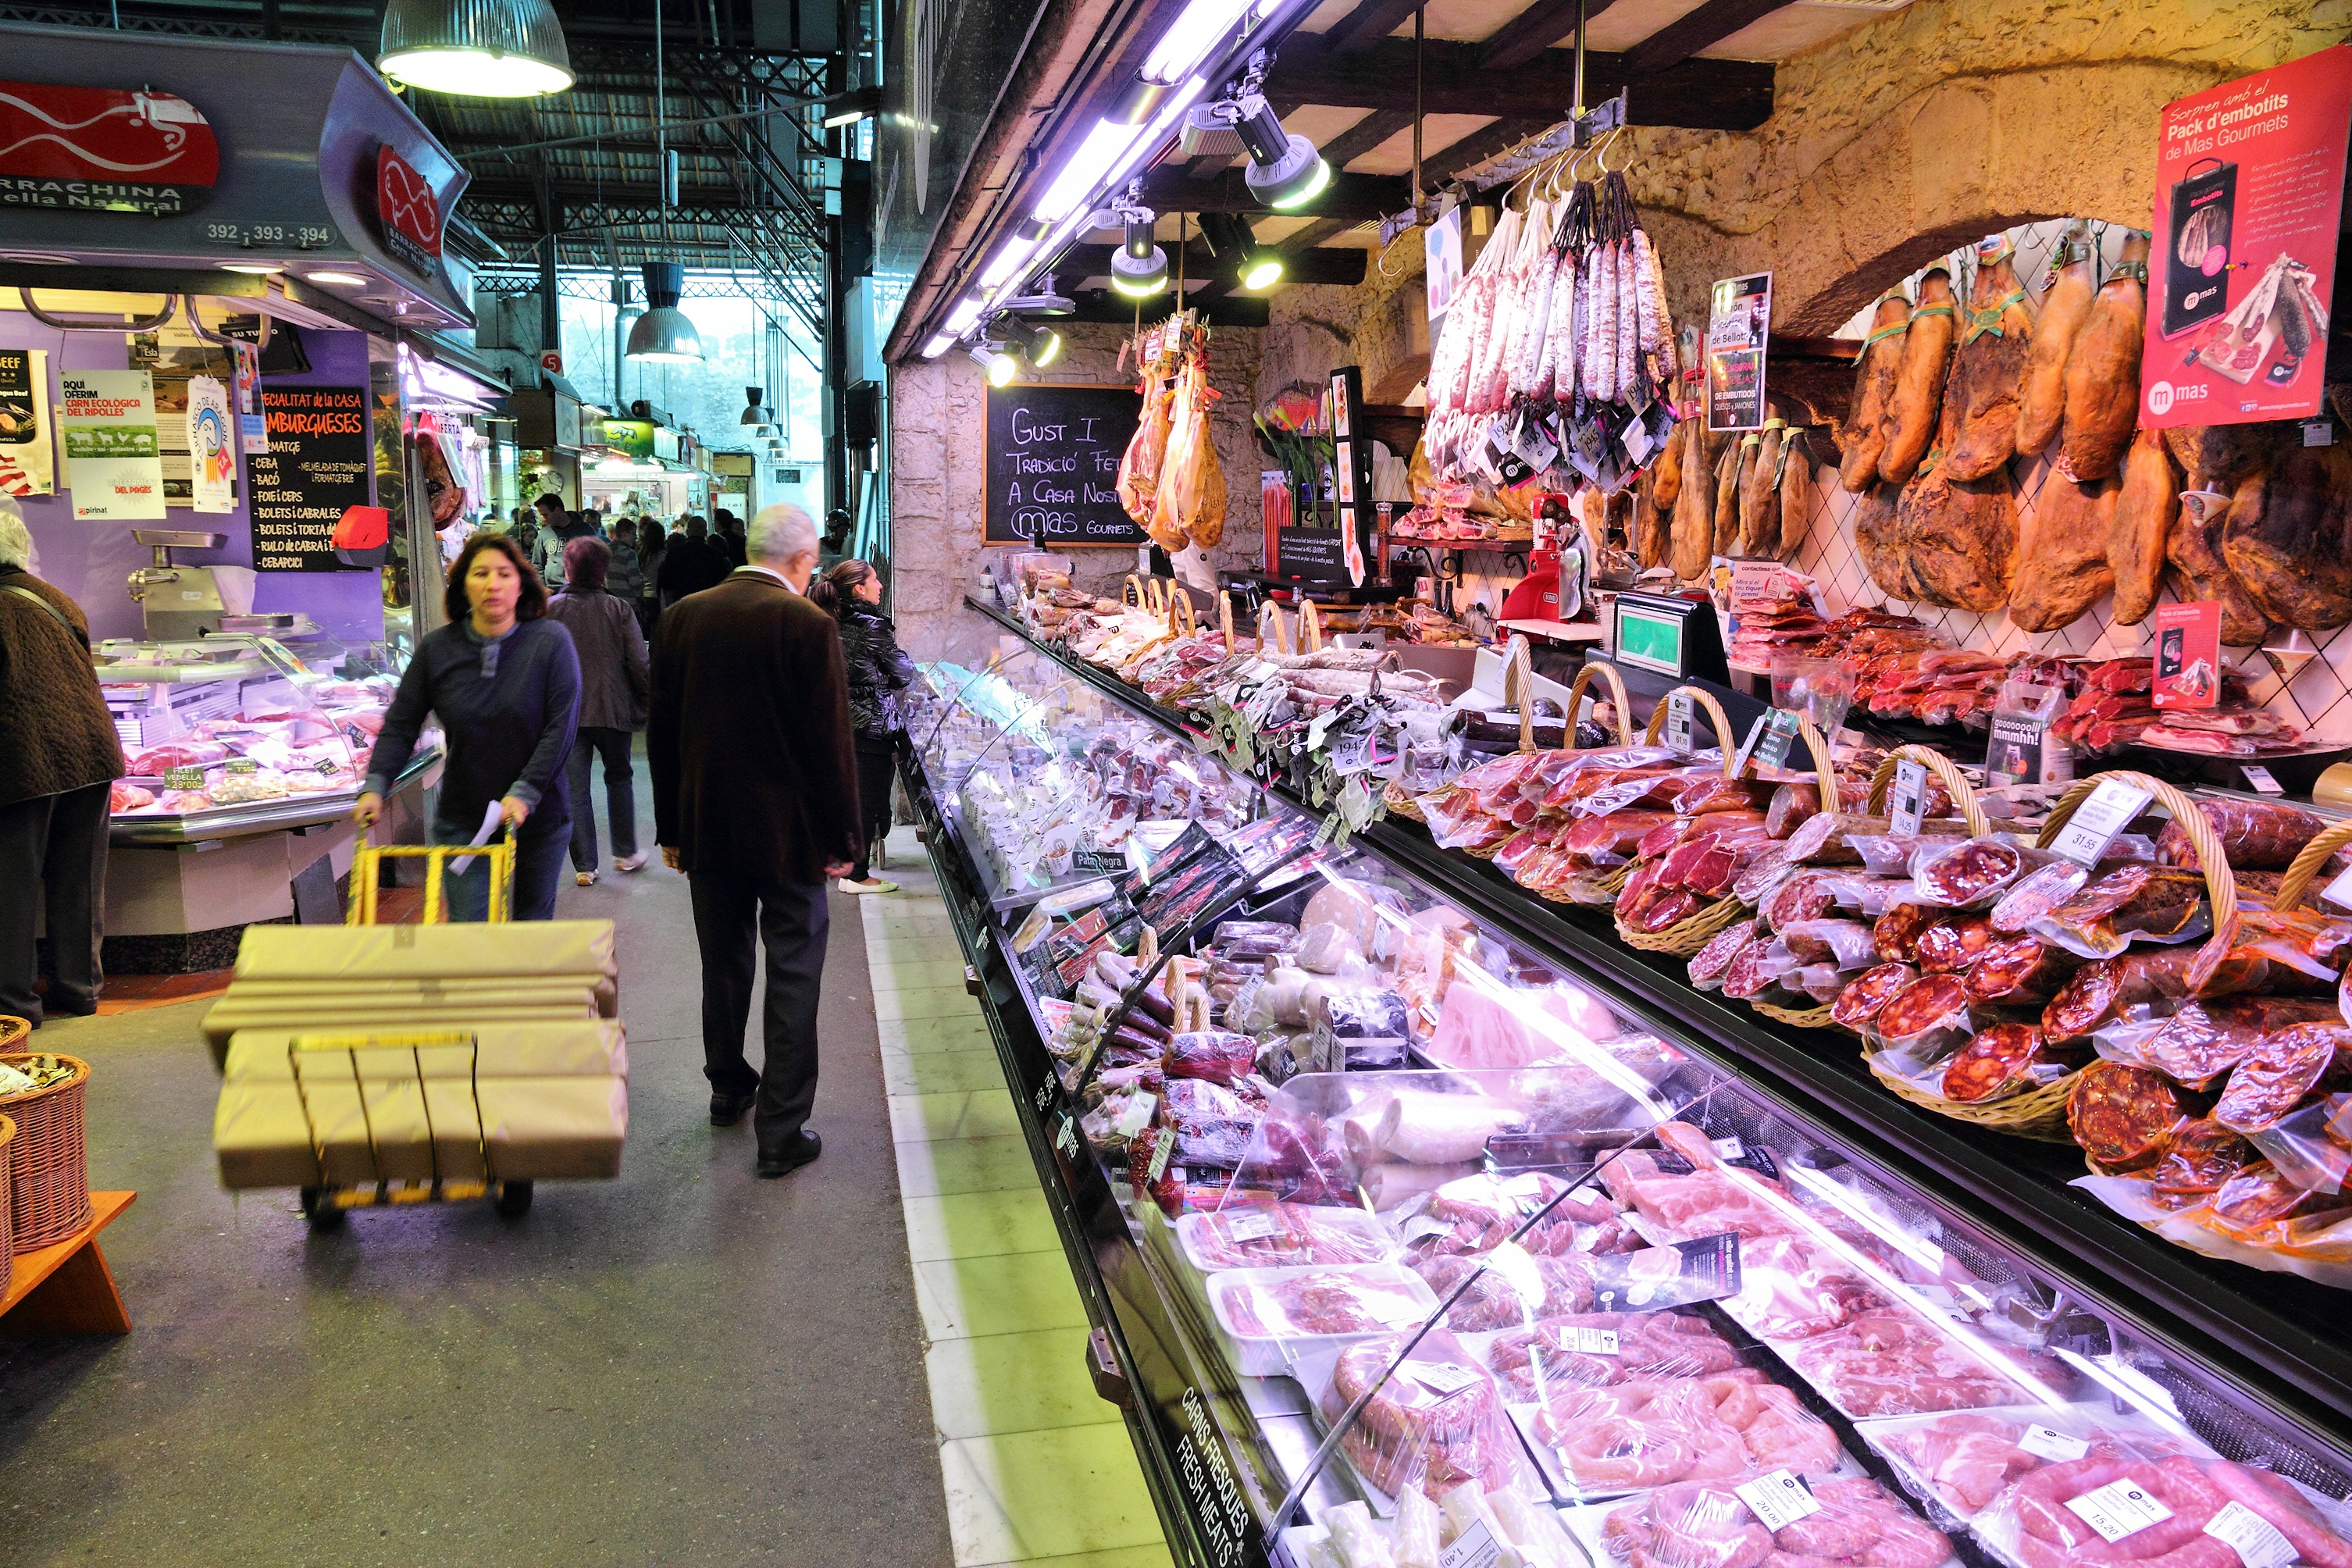 Barcelona, Spain - November 6, 2012: People visit meat shop at Boqueria market in Barcelona, Spain. The marketplace in Ciutat Vella district dates back to year 1217.